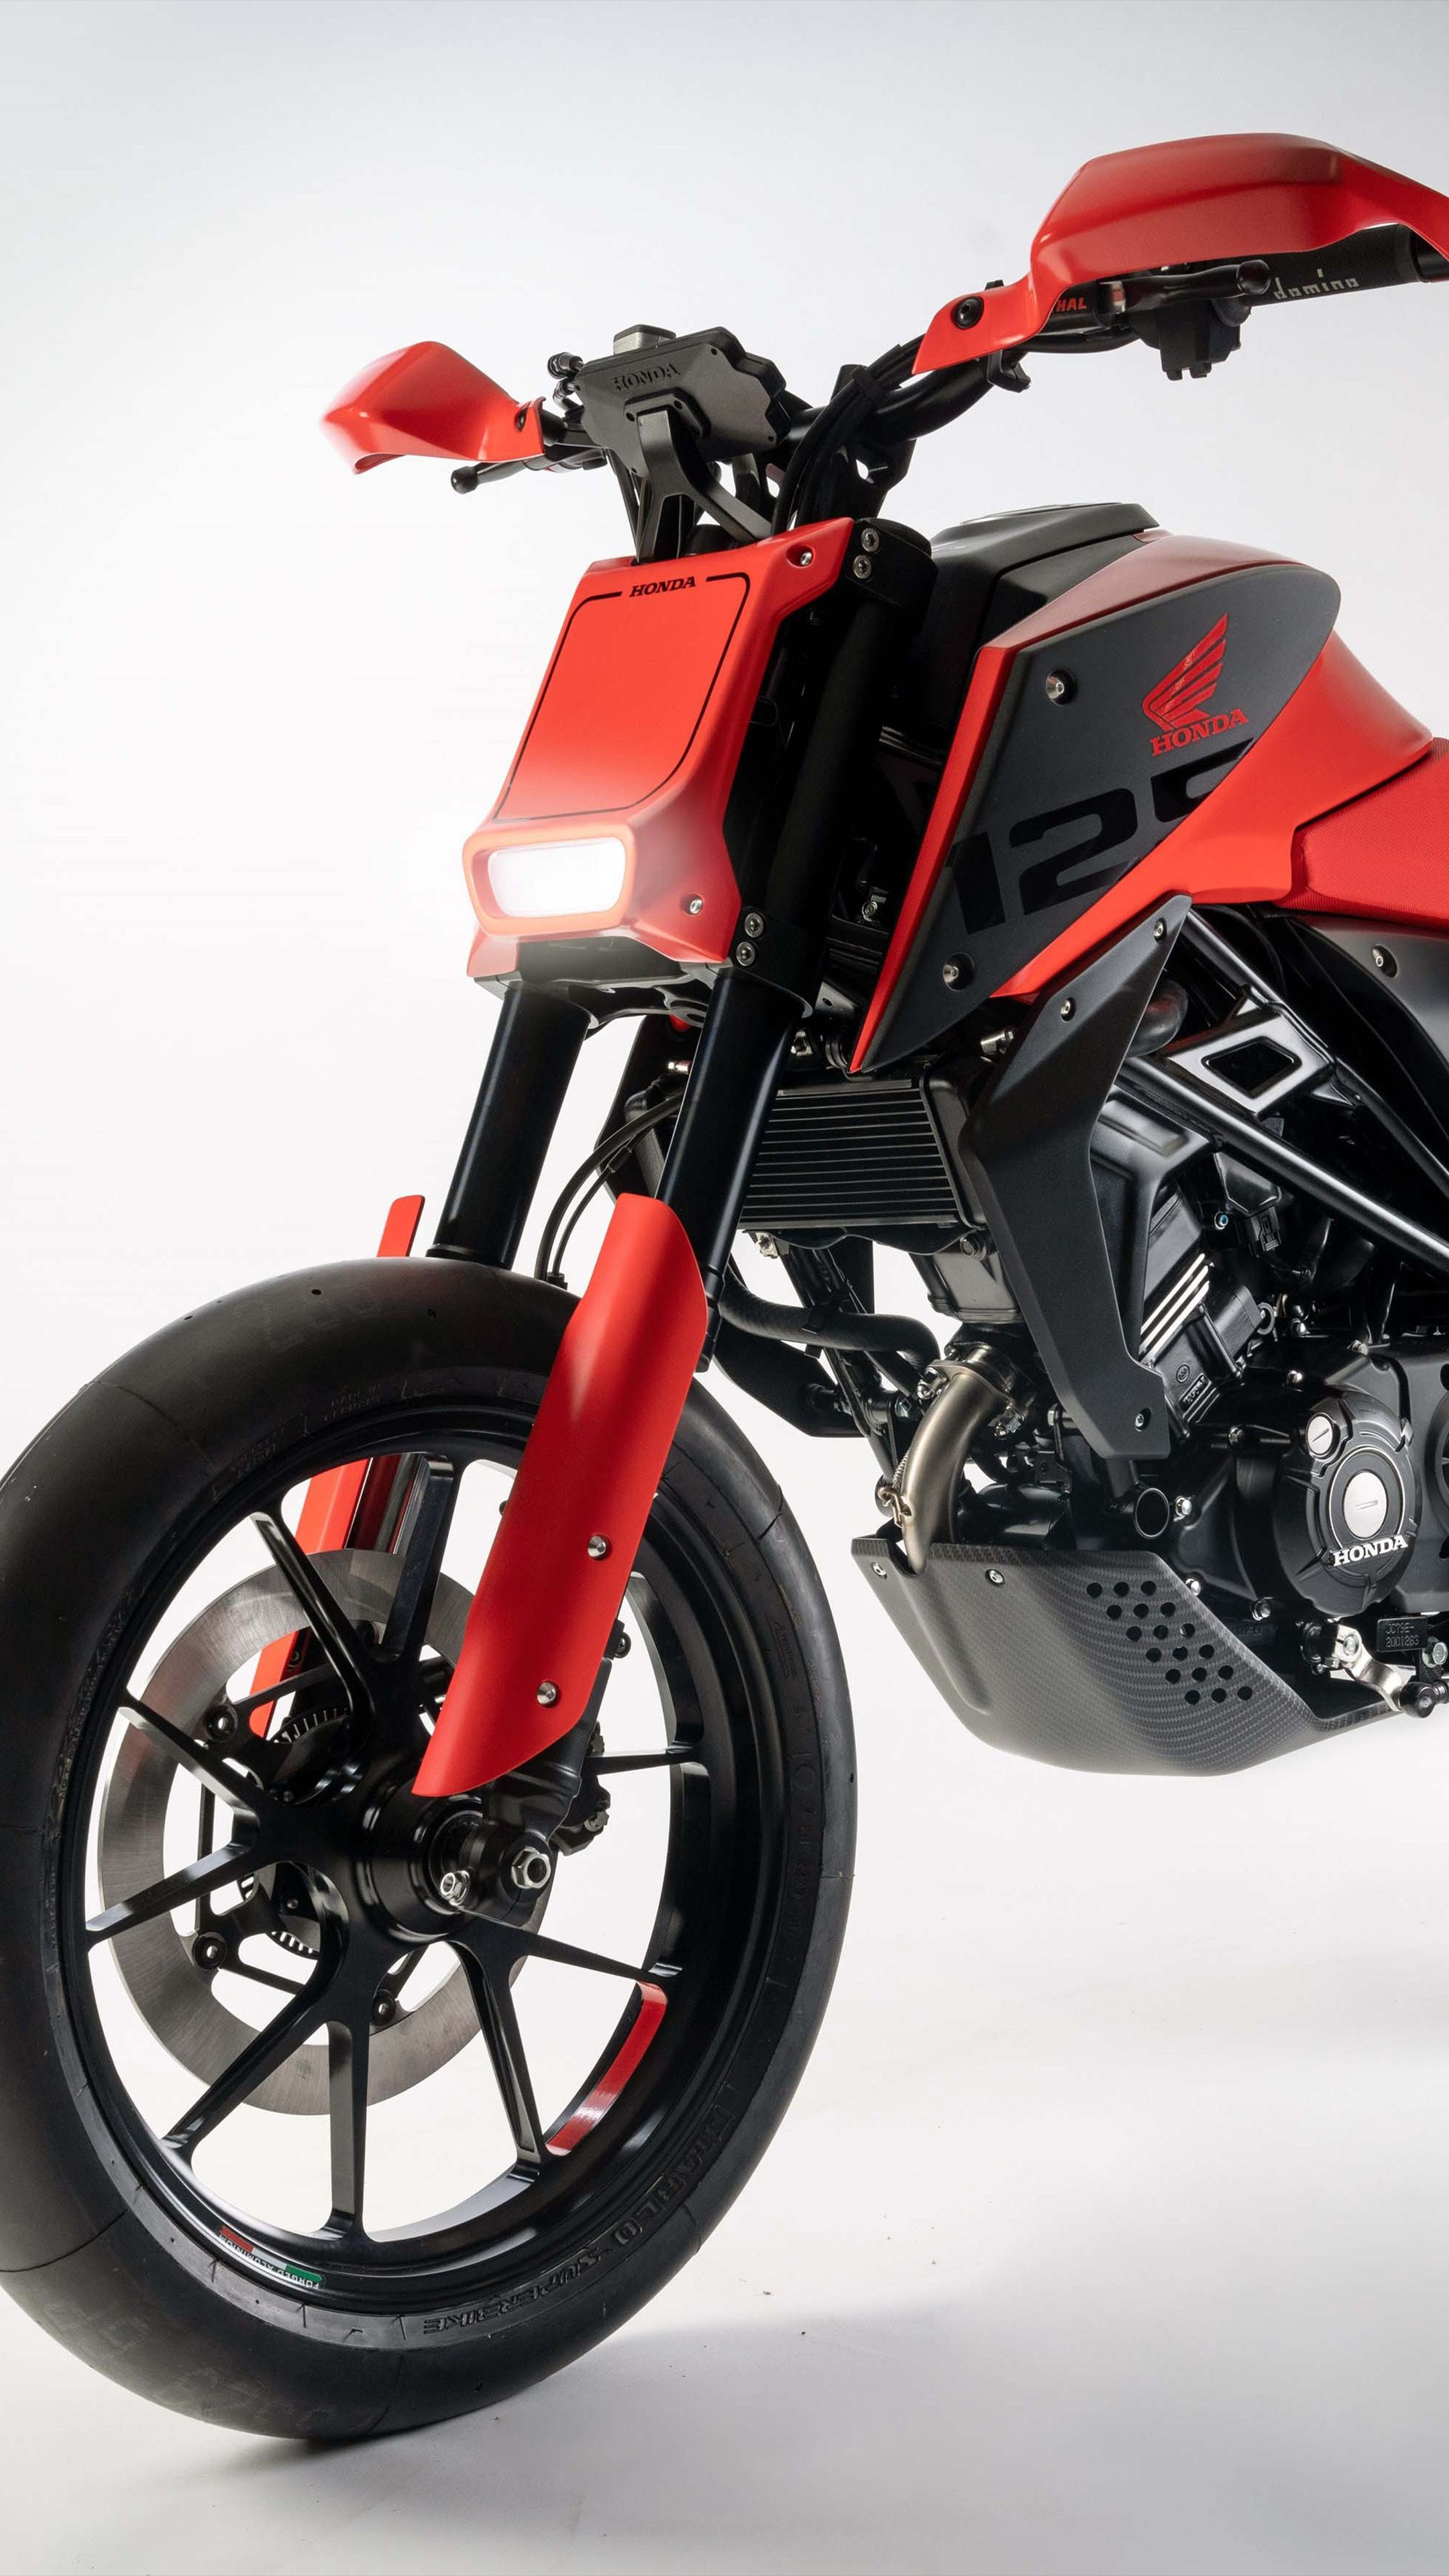 Honda Phone Wallpapers Honda Cb125m Concept Bike Bike Wallpapers Pinterest Honda